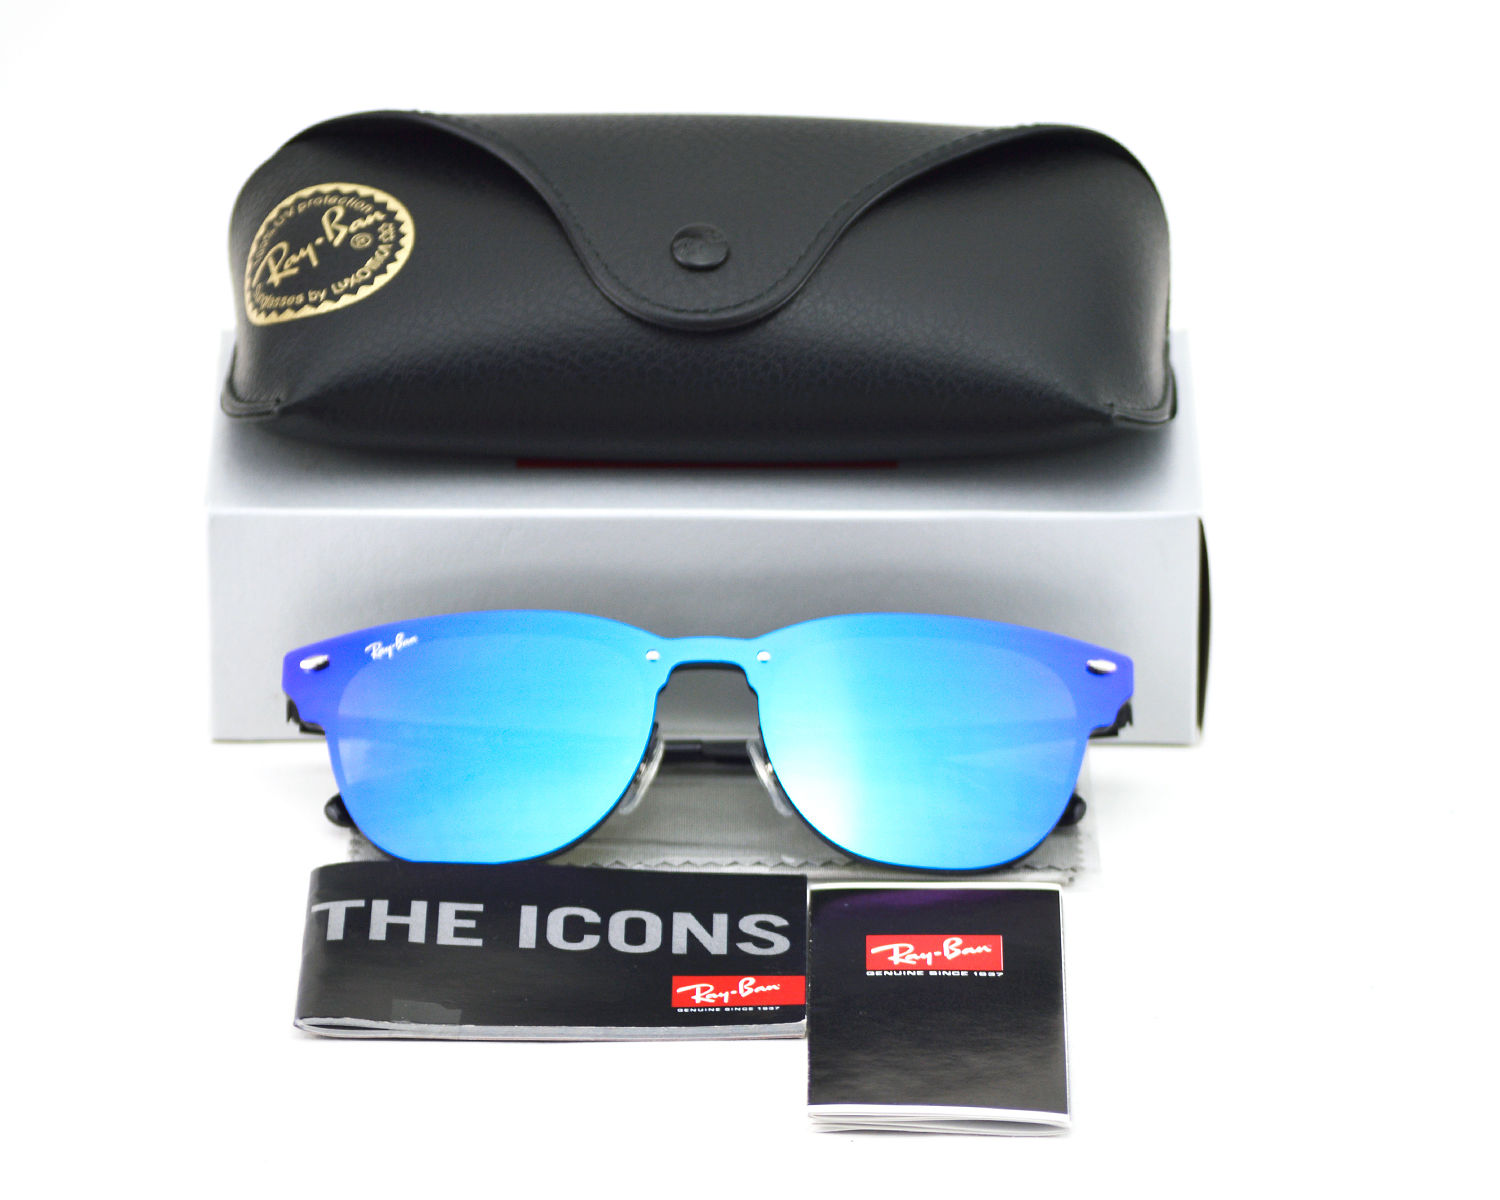 f476b97497f Ray-Ban RB3576N Blaze Clubmaster 153 7V Black Frame Violet Blue Mirror  Lenses Unisex Sunglasses 47mm